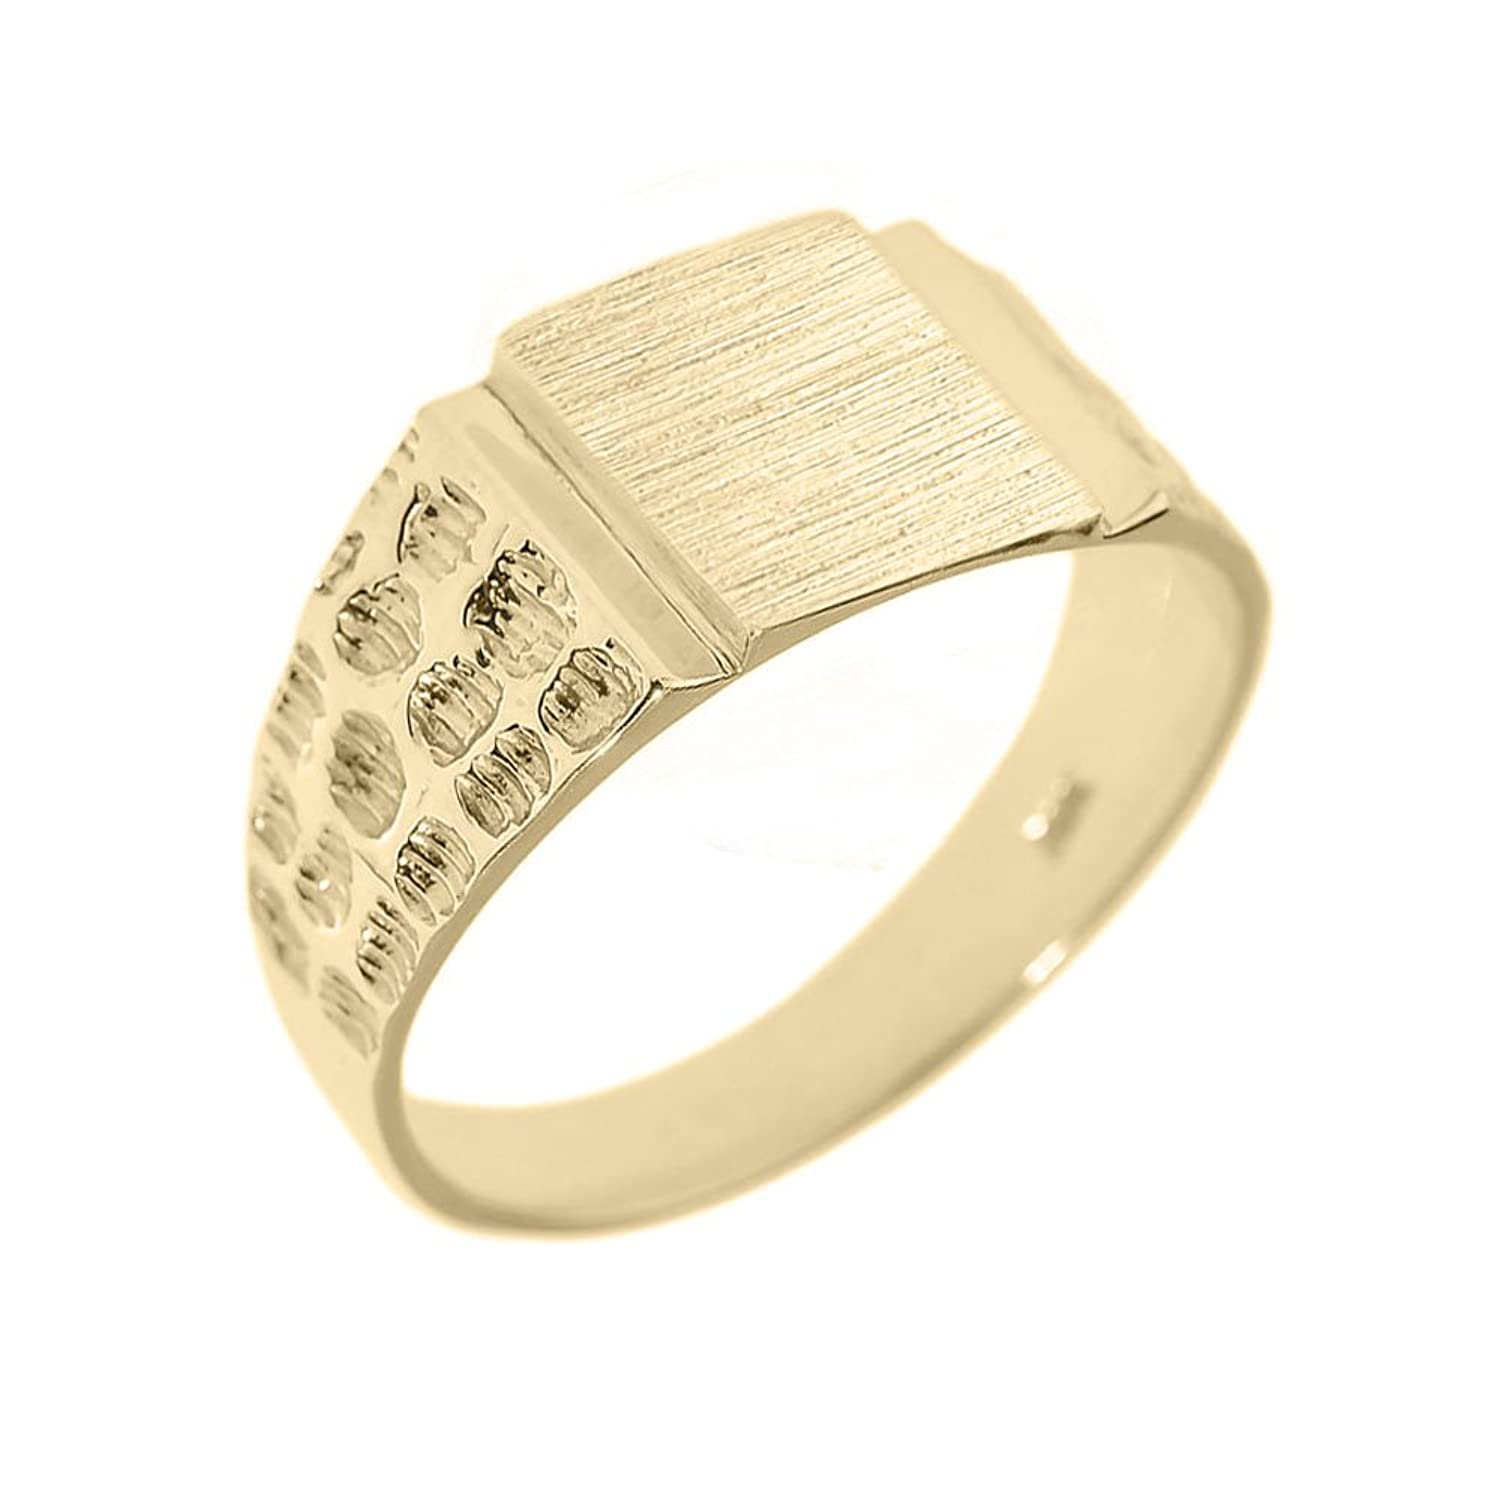 Men's High Polish 14k Yellow Gold Engravable Square Top Nugget Band Signet Ring